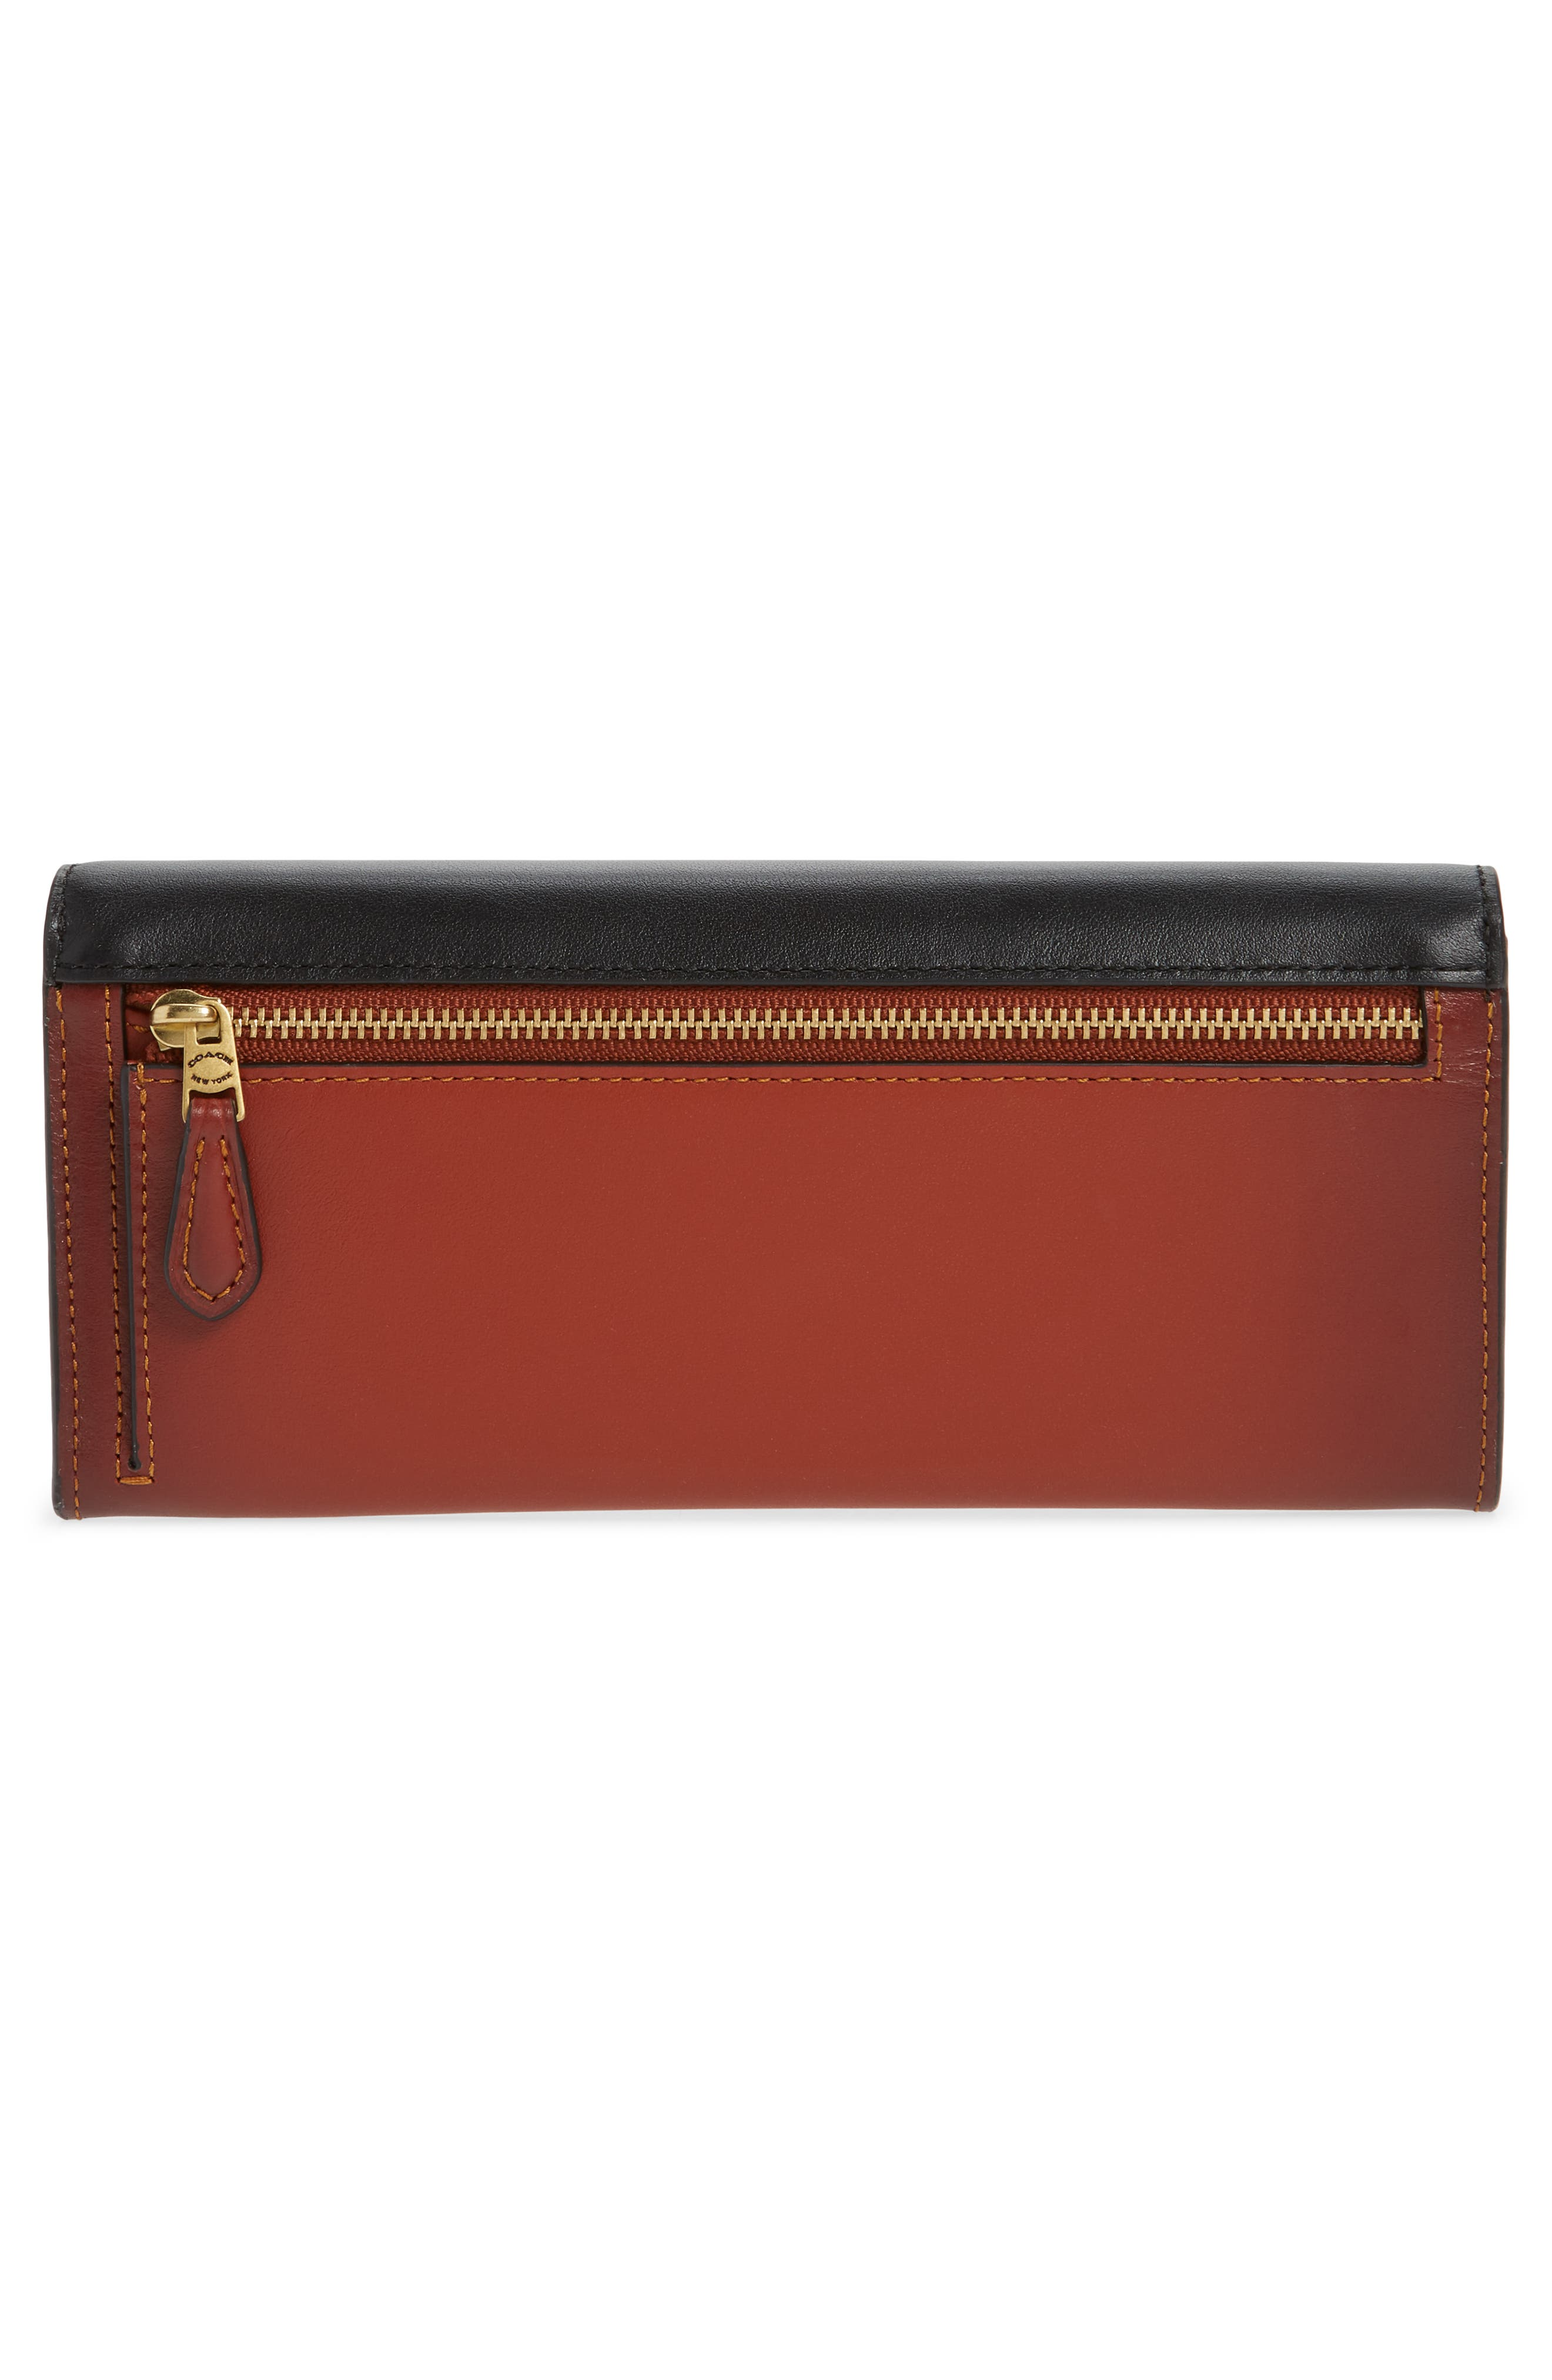 COACH, Colorblock Leather & Coated Canvas Wallet, Alternate thumbnail 3, color, TAN BLACK